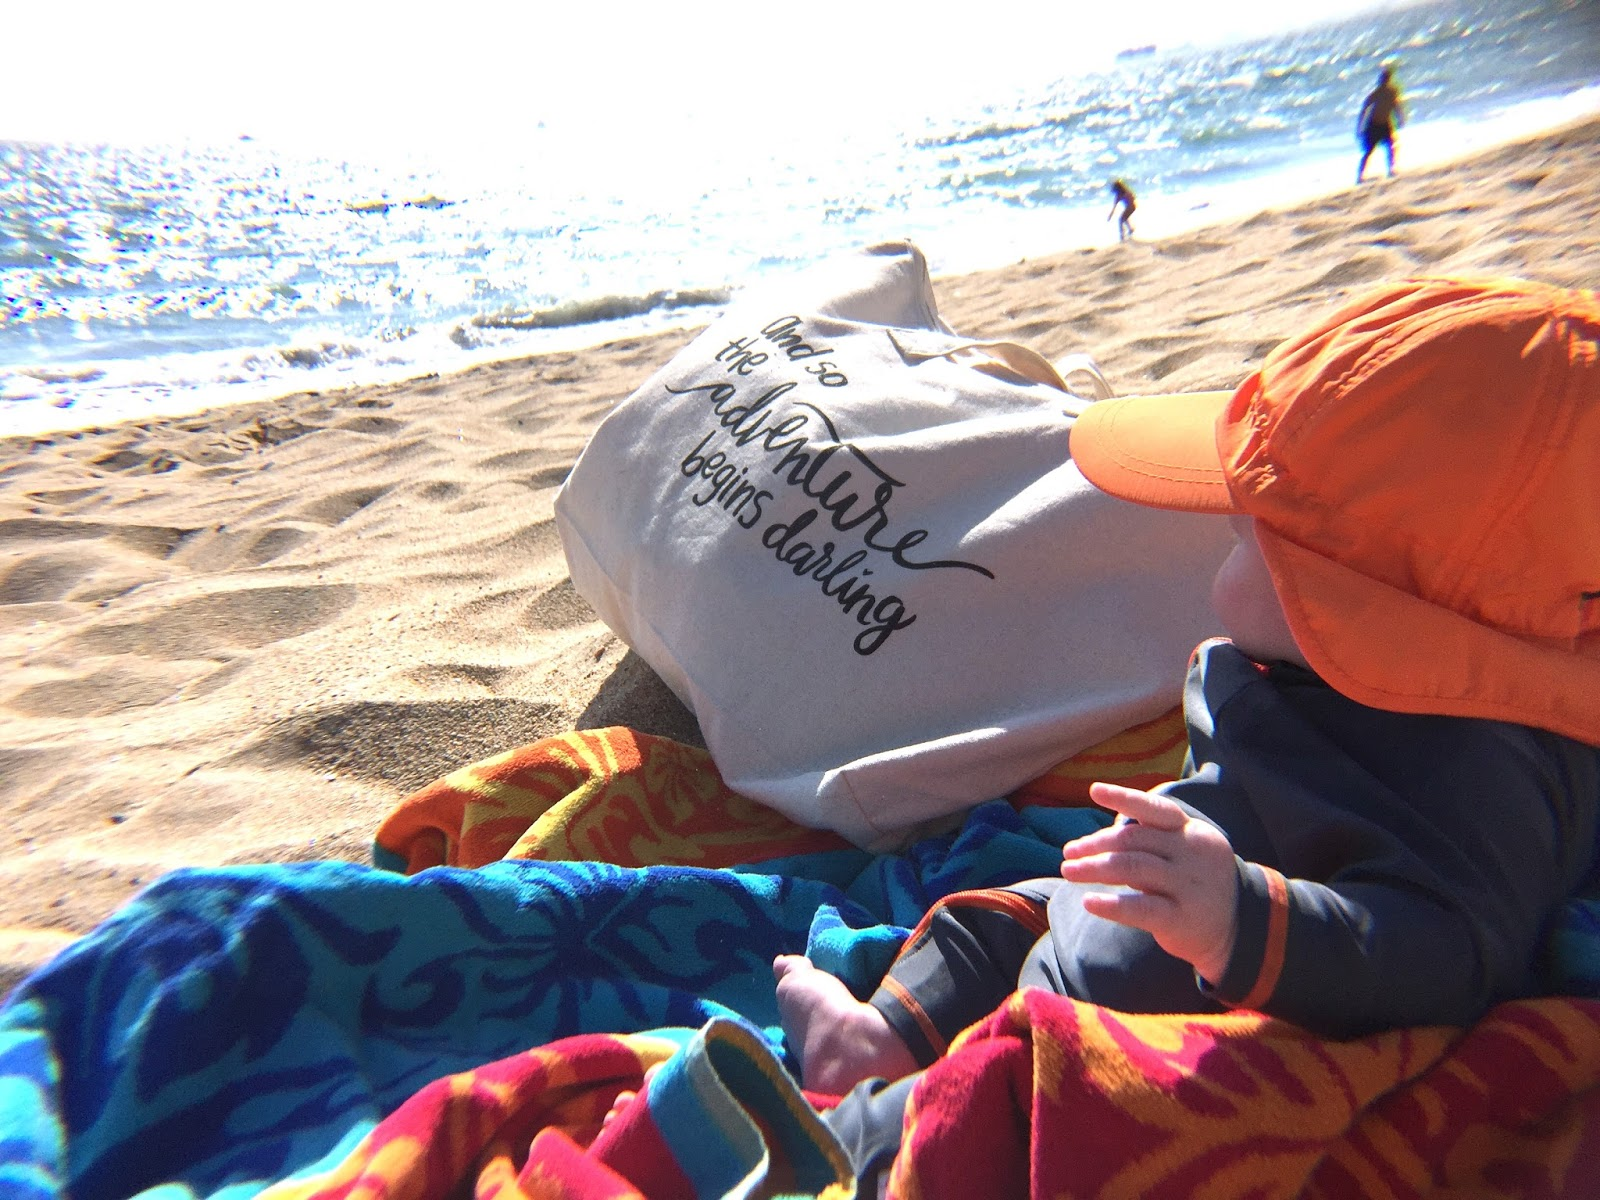 eeb37810 Avoid Sun exposure during the hours when sun is at it's most intense,  10am-4pm. If unable to limit exposure then seek shade and try to keep  baby's delicate ...